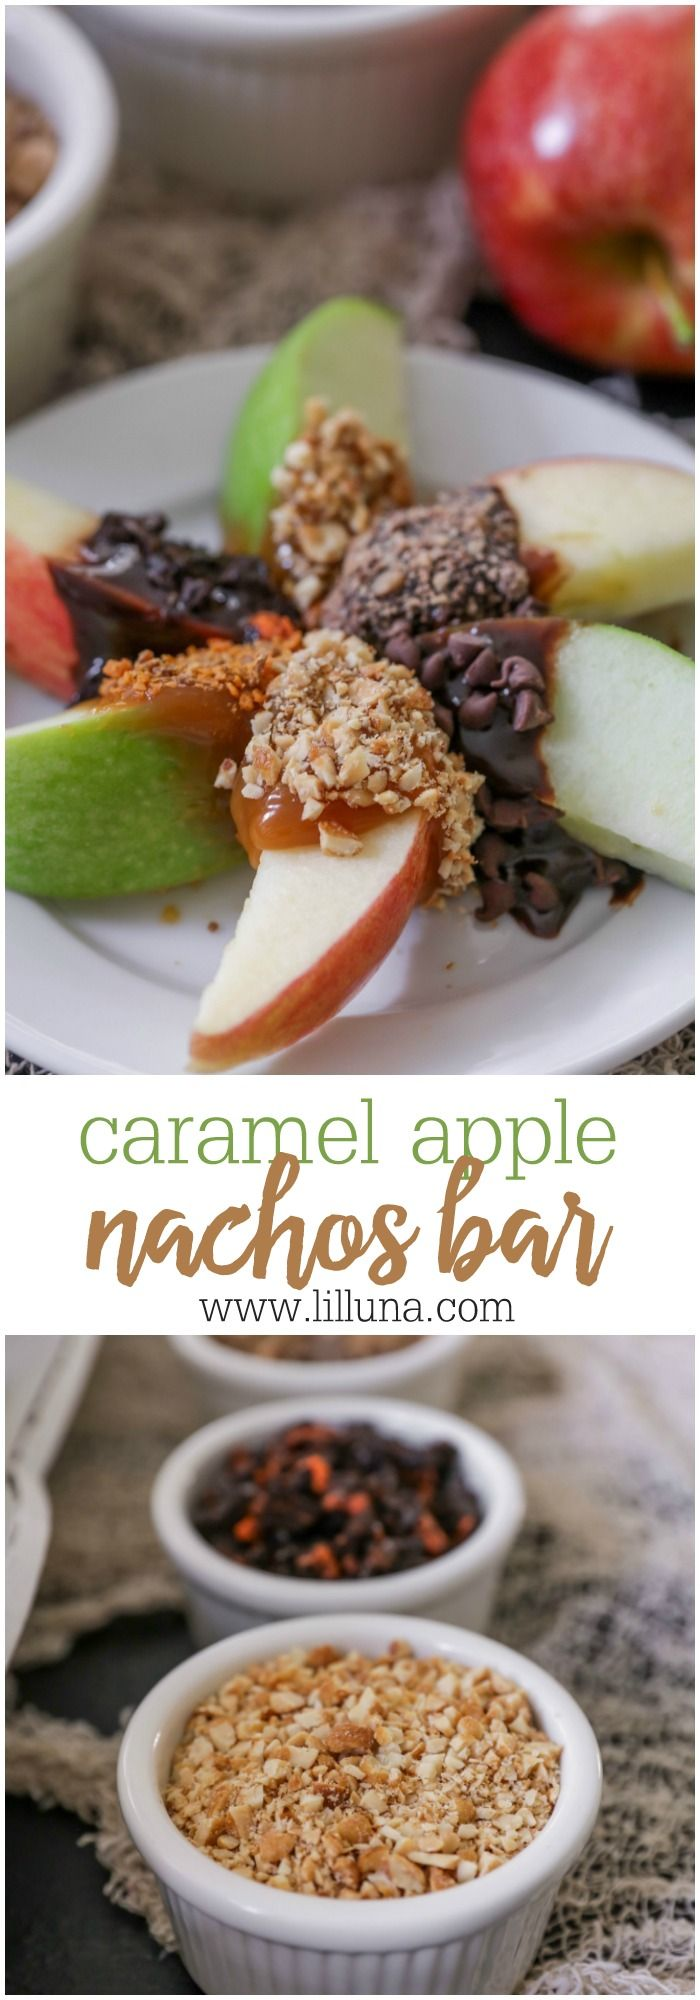 Caramel Apple Nachos bar - apple slices with chocolate and caramel dip with a variety of toppings. #ad